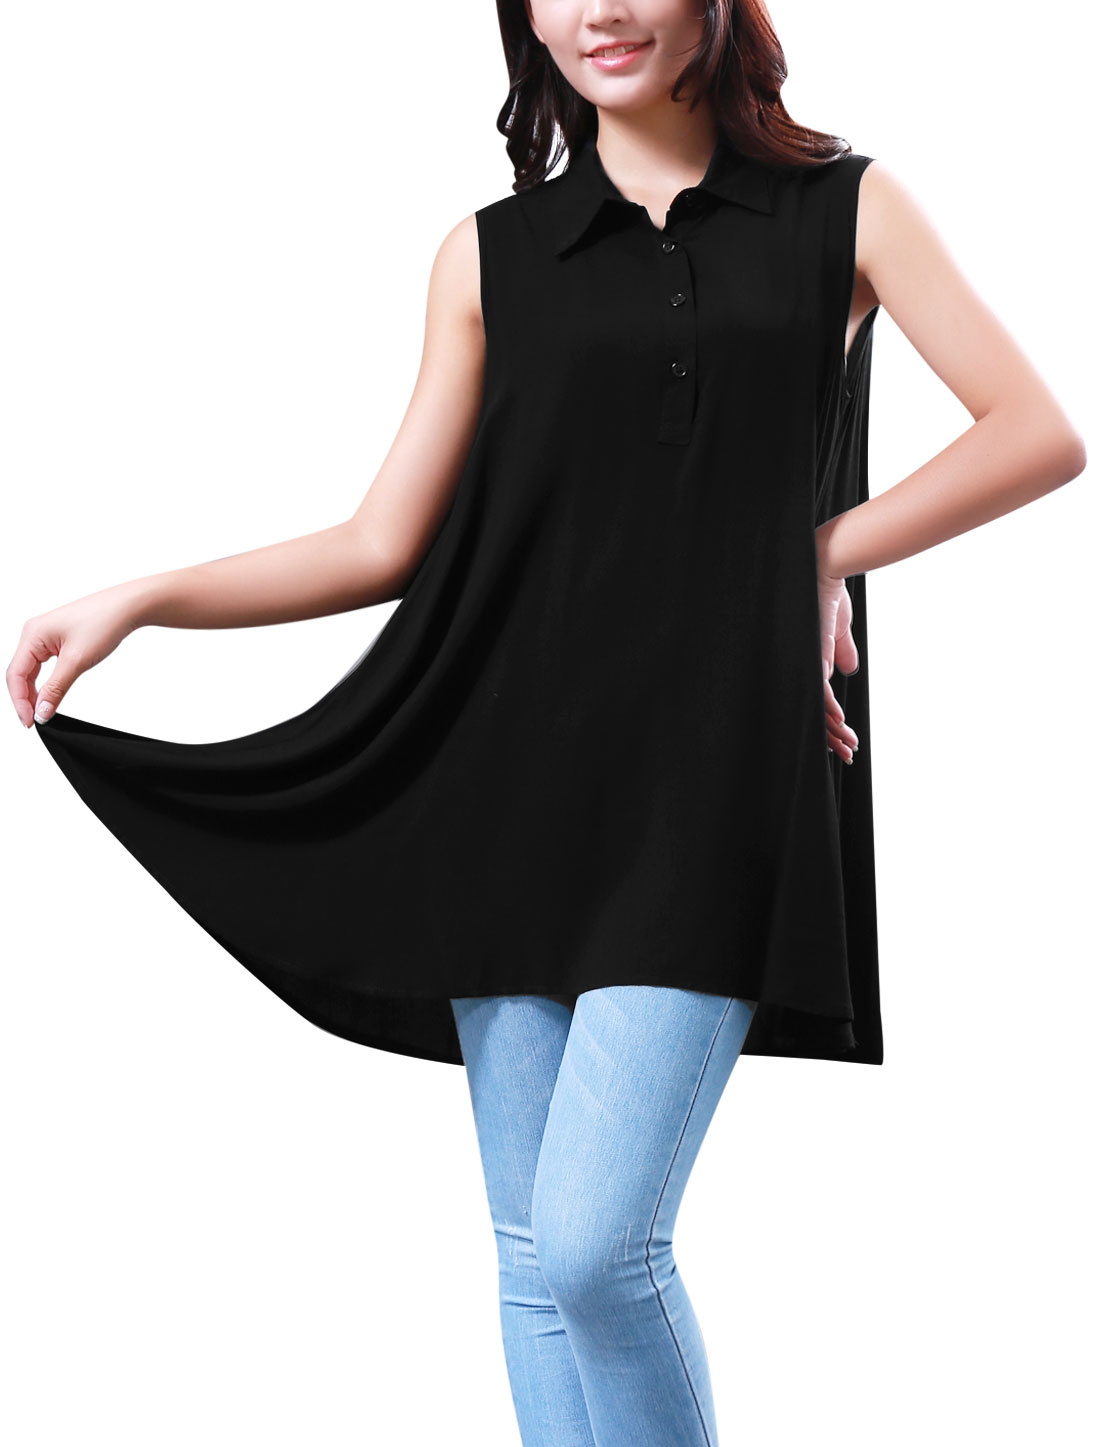 See Through Lace Panel Back Asymmetric Hem Top Shirt for Woman Black XL